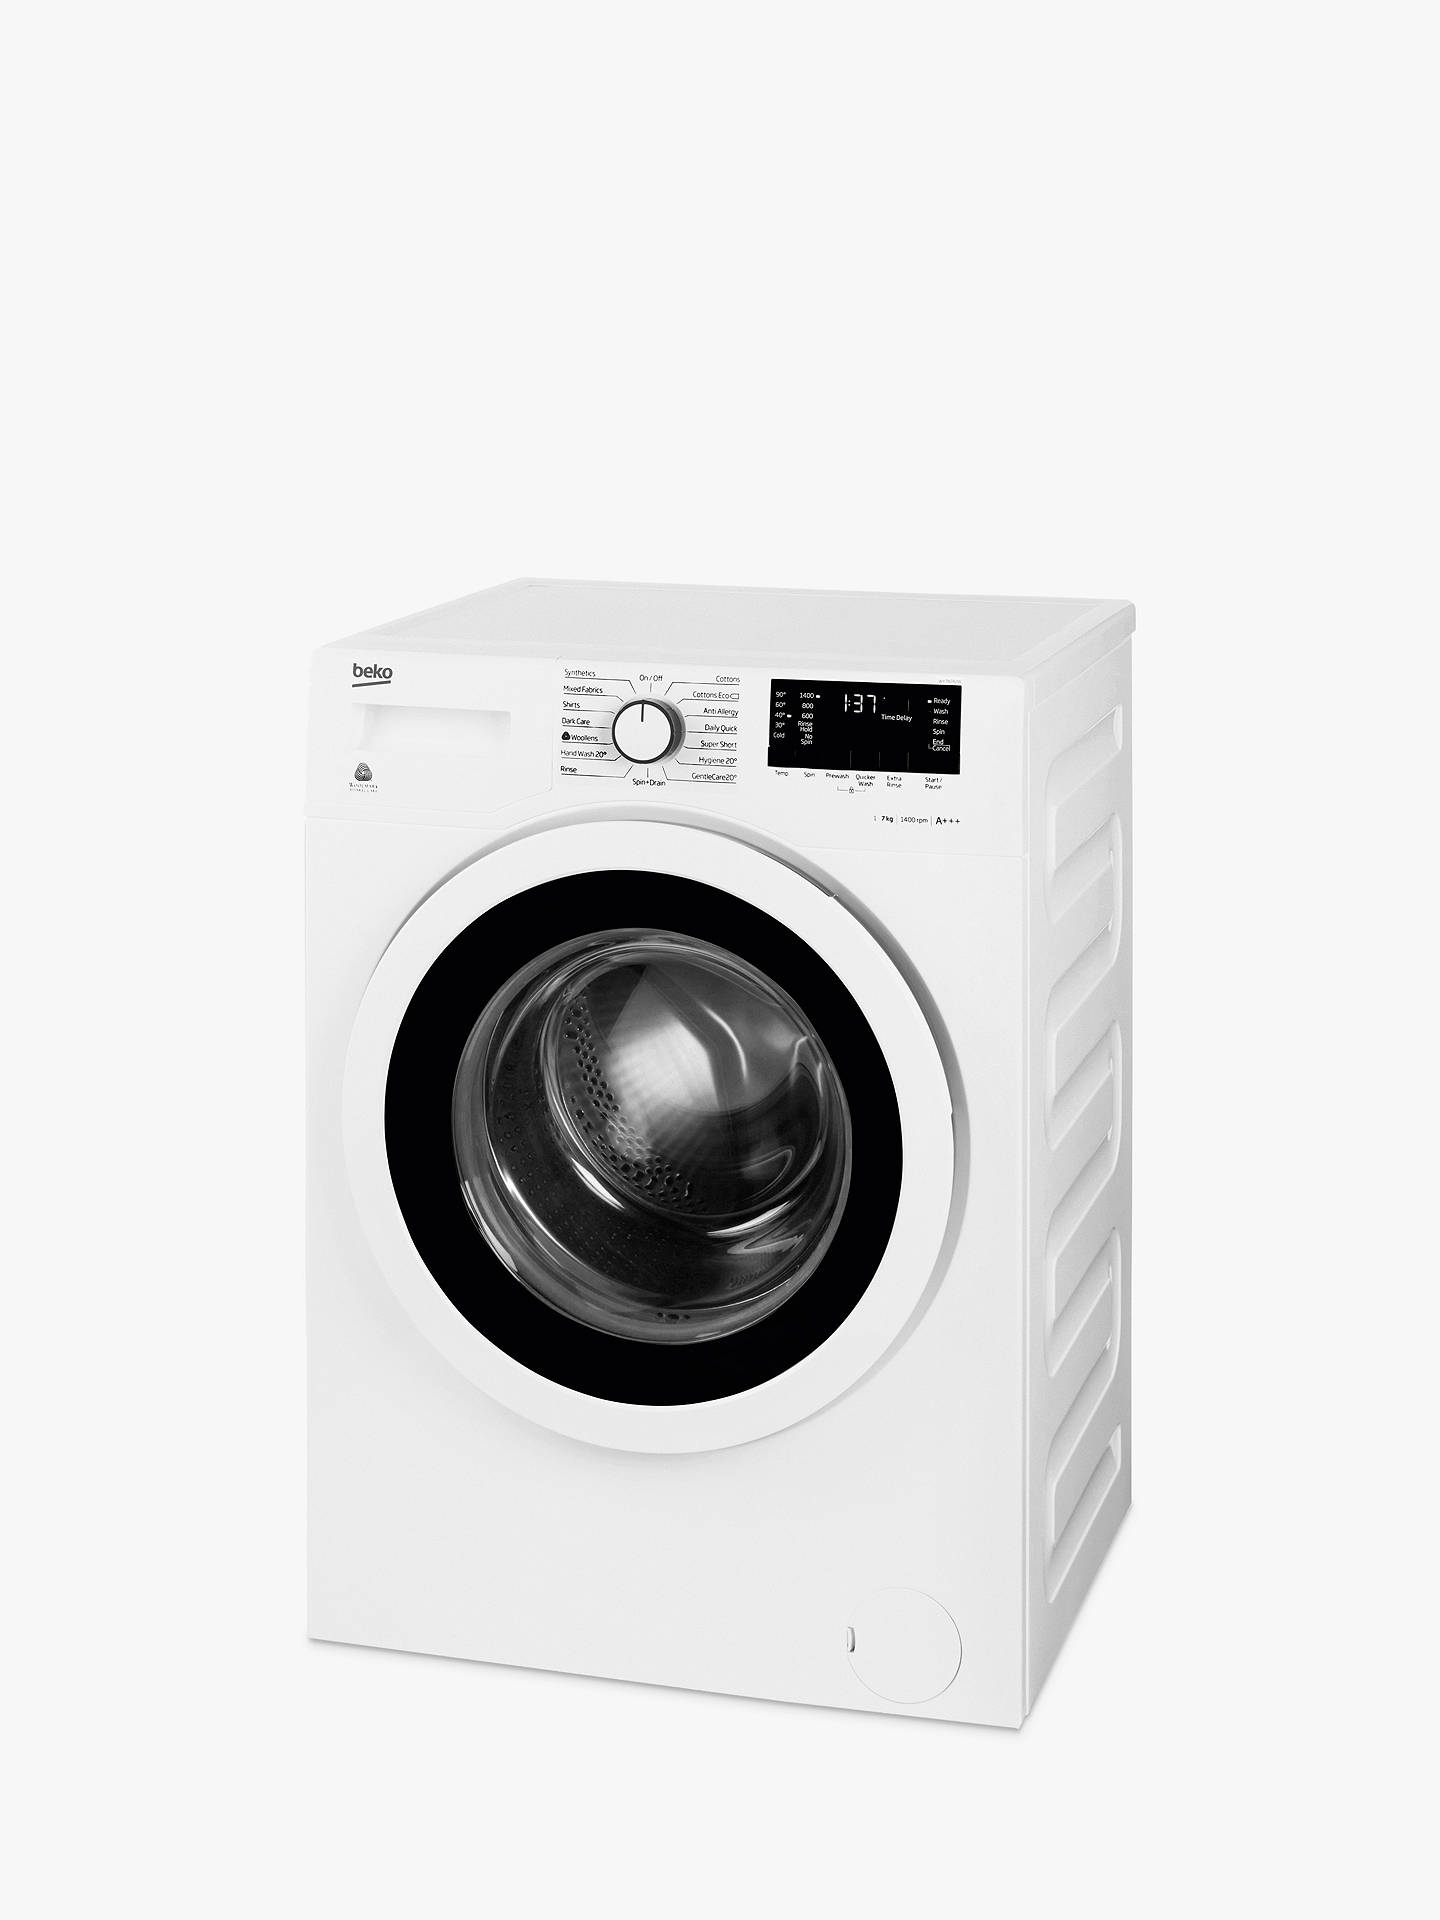 Buy Beko WY74242W Slim Depth Freestanding Washing Machine, 7kg Load, A+++ Energy Rating, 1400rpm Spin, White Online at johnlewis.com